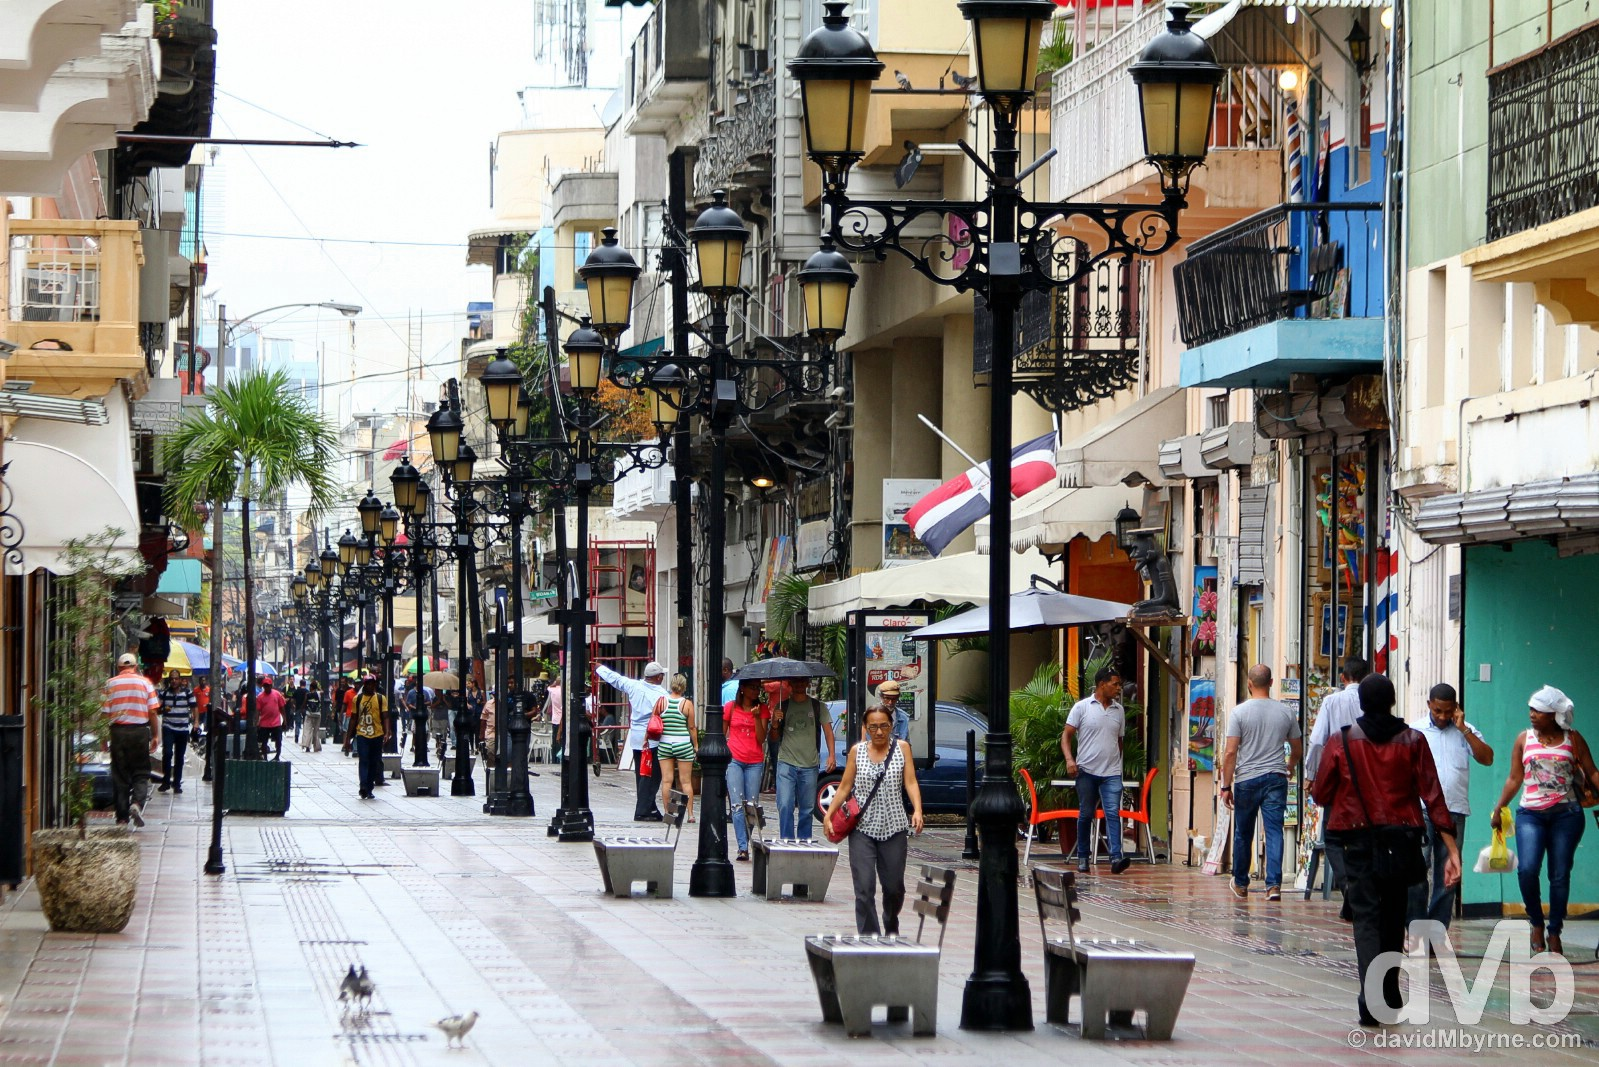 Pedestrianised El Conde in Santo Domingo, Dominican Republic. May 25, 2015.